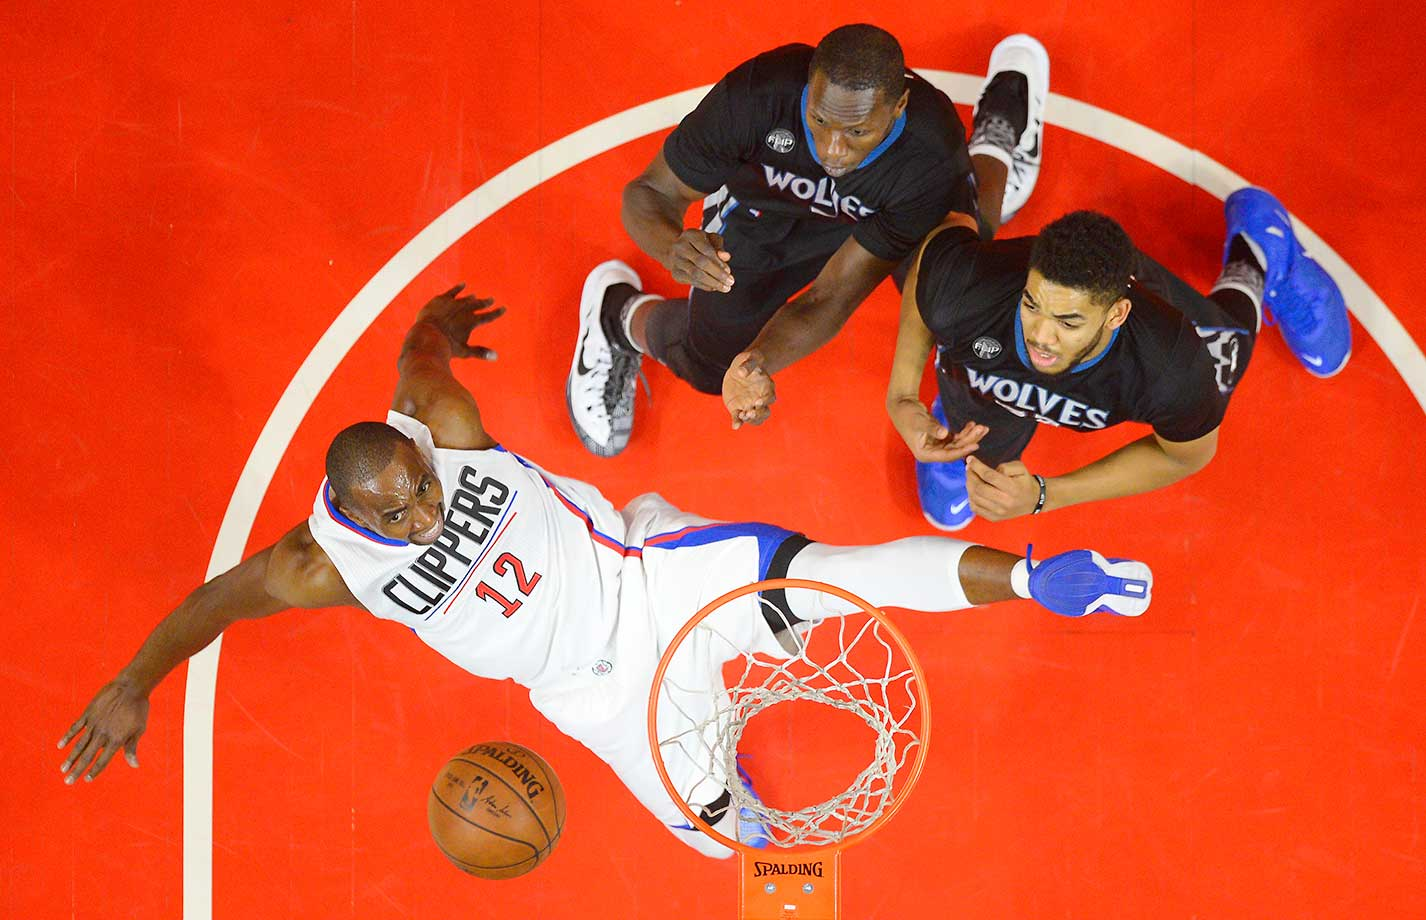 Los Angeles Clippers forward Luc Richard Mbah a Moute falls after shooting as Gorgui Dieng and Karl-Anthony Towns defend in Los Angeles.